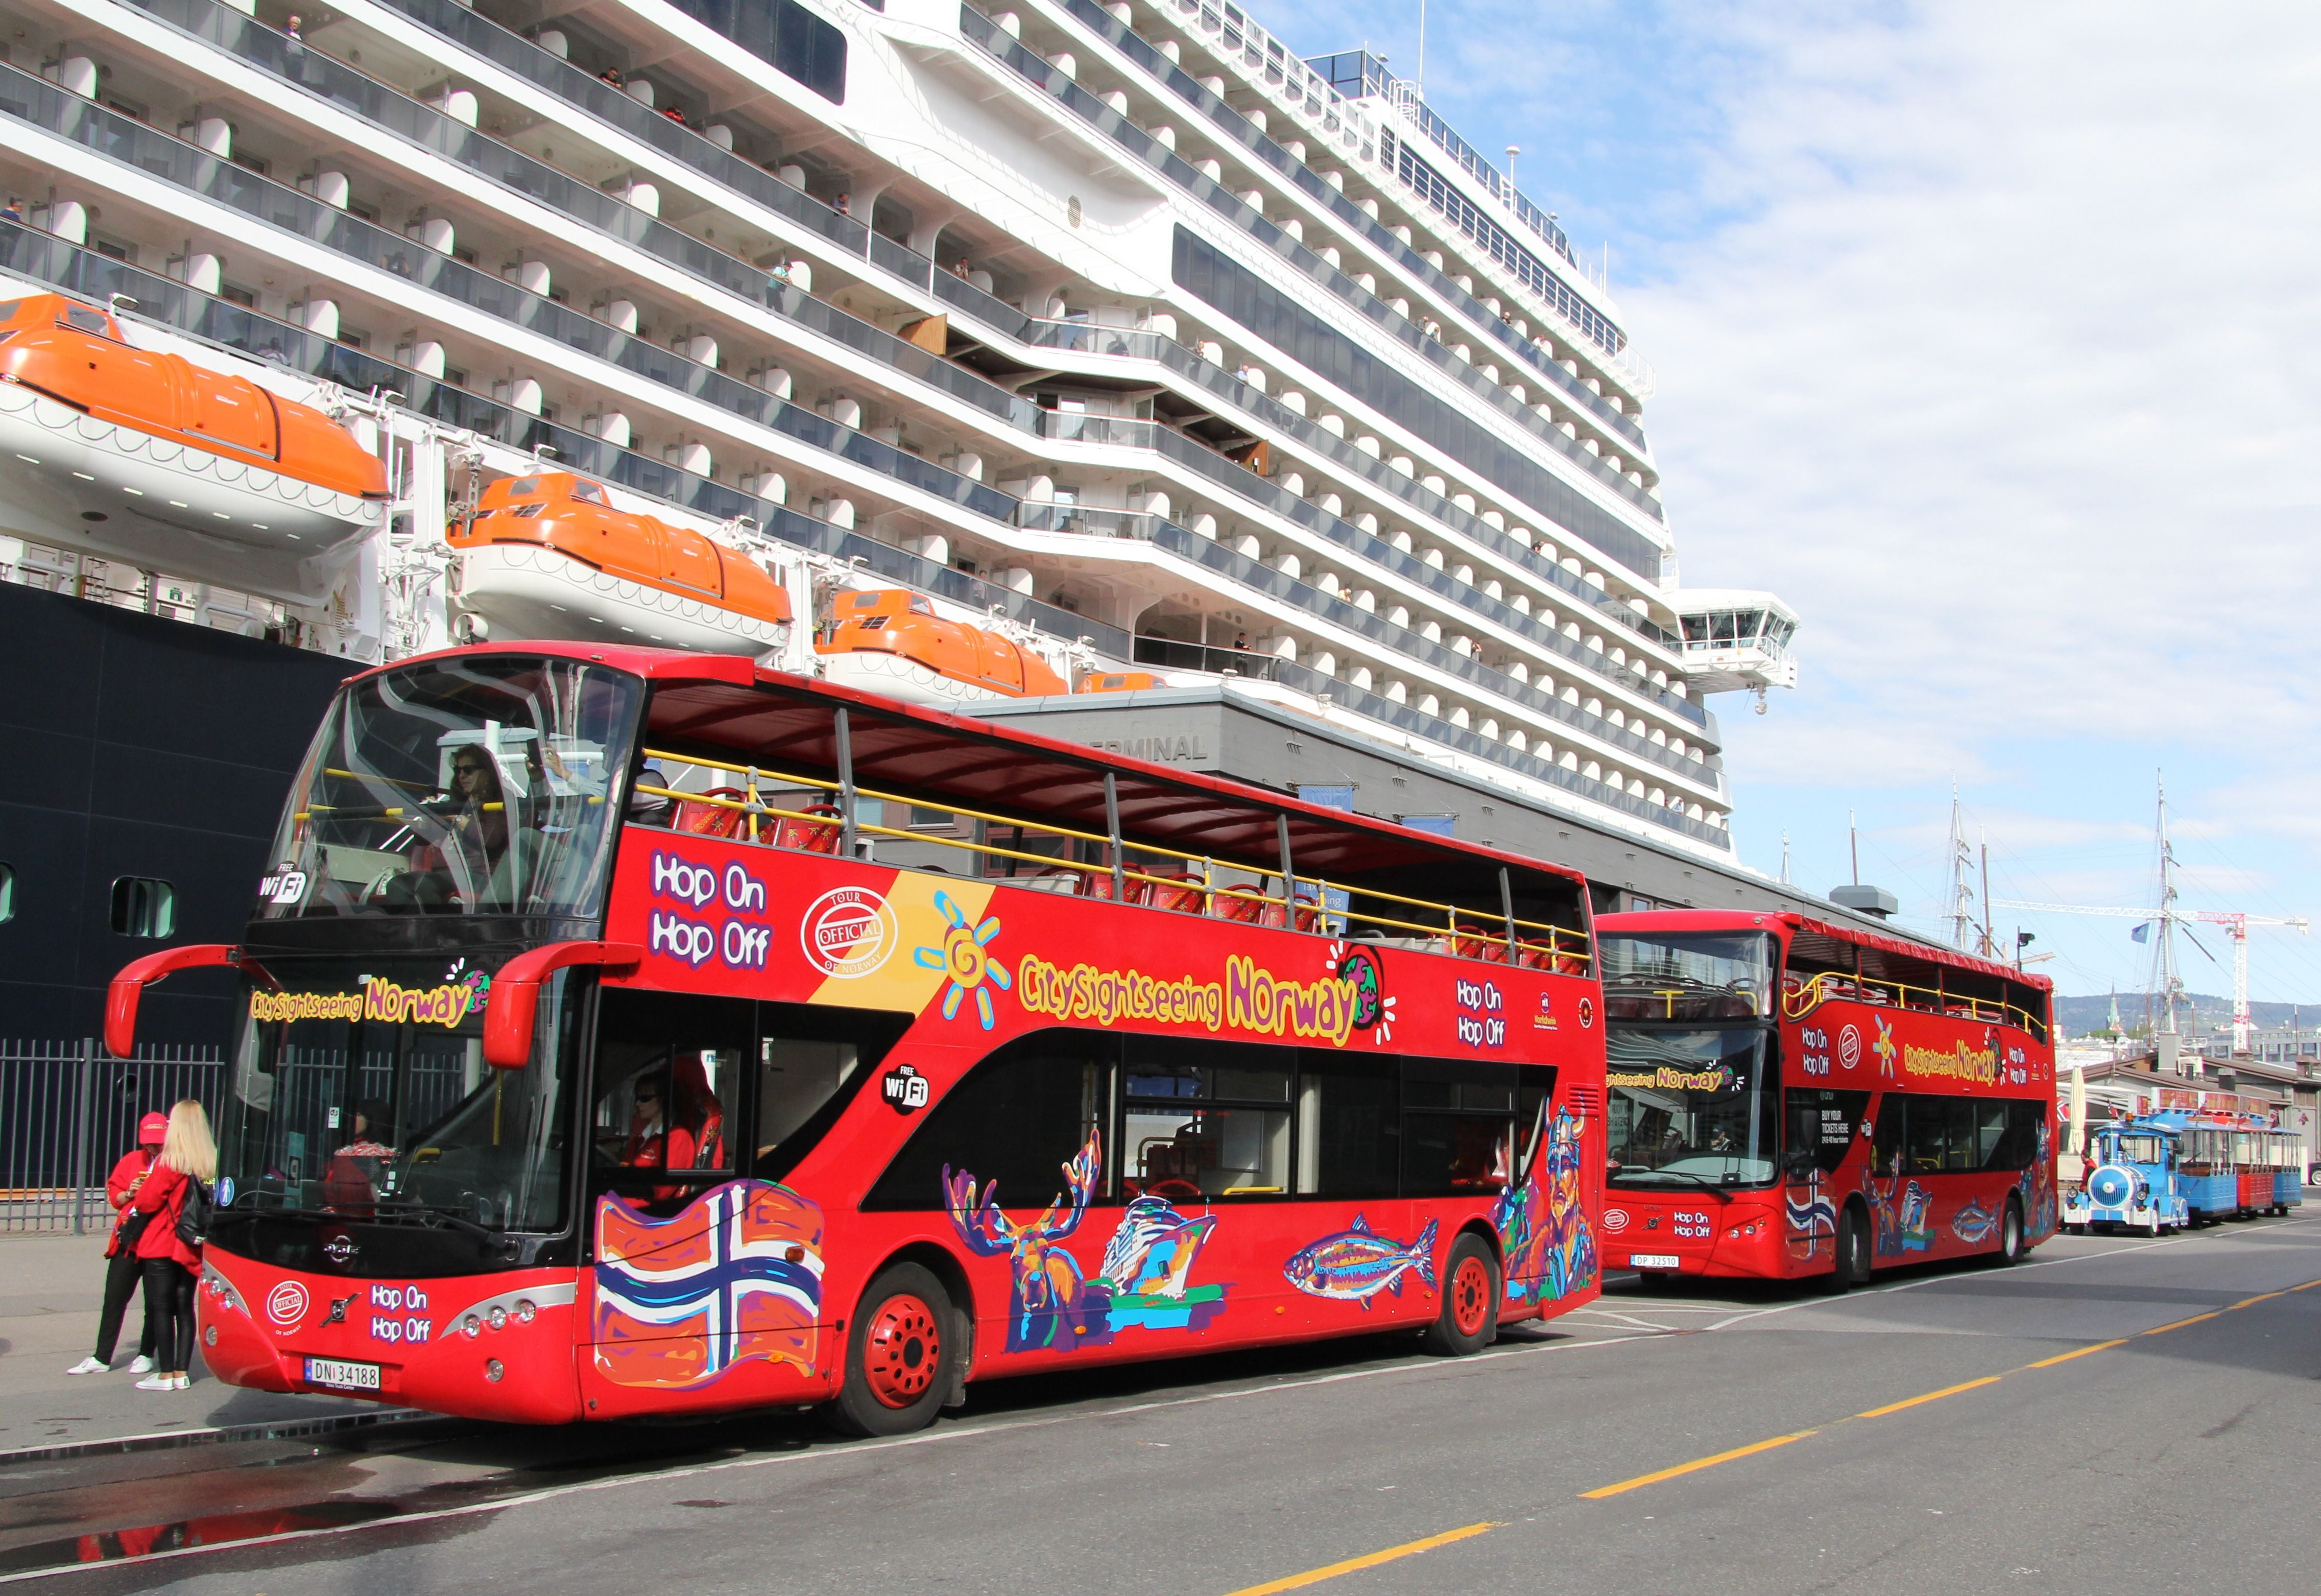 City Sightseeing Oslo Royal Caribbean Ships Theme Cruises Vacation Alone